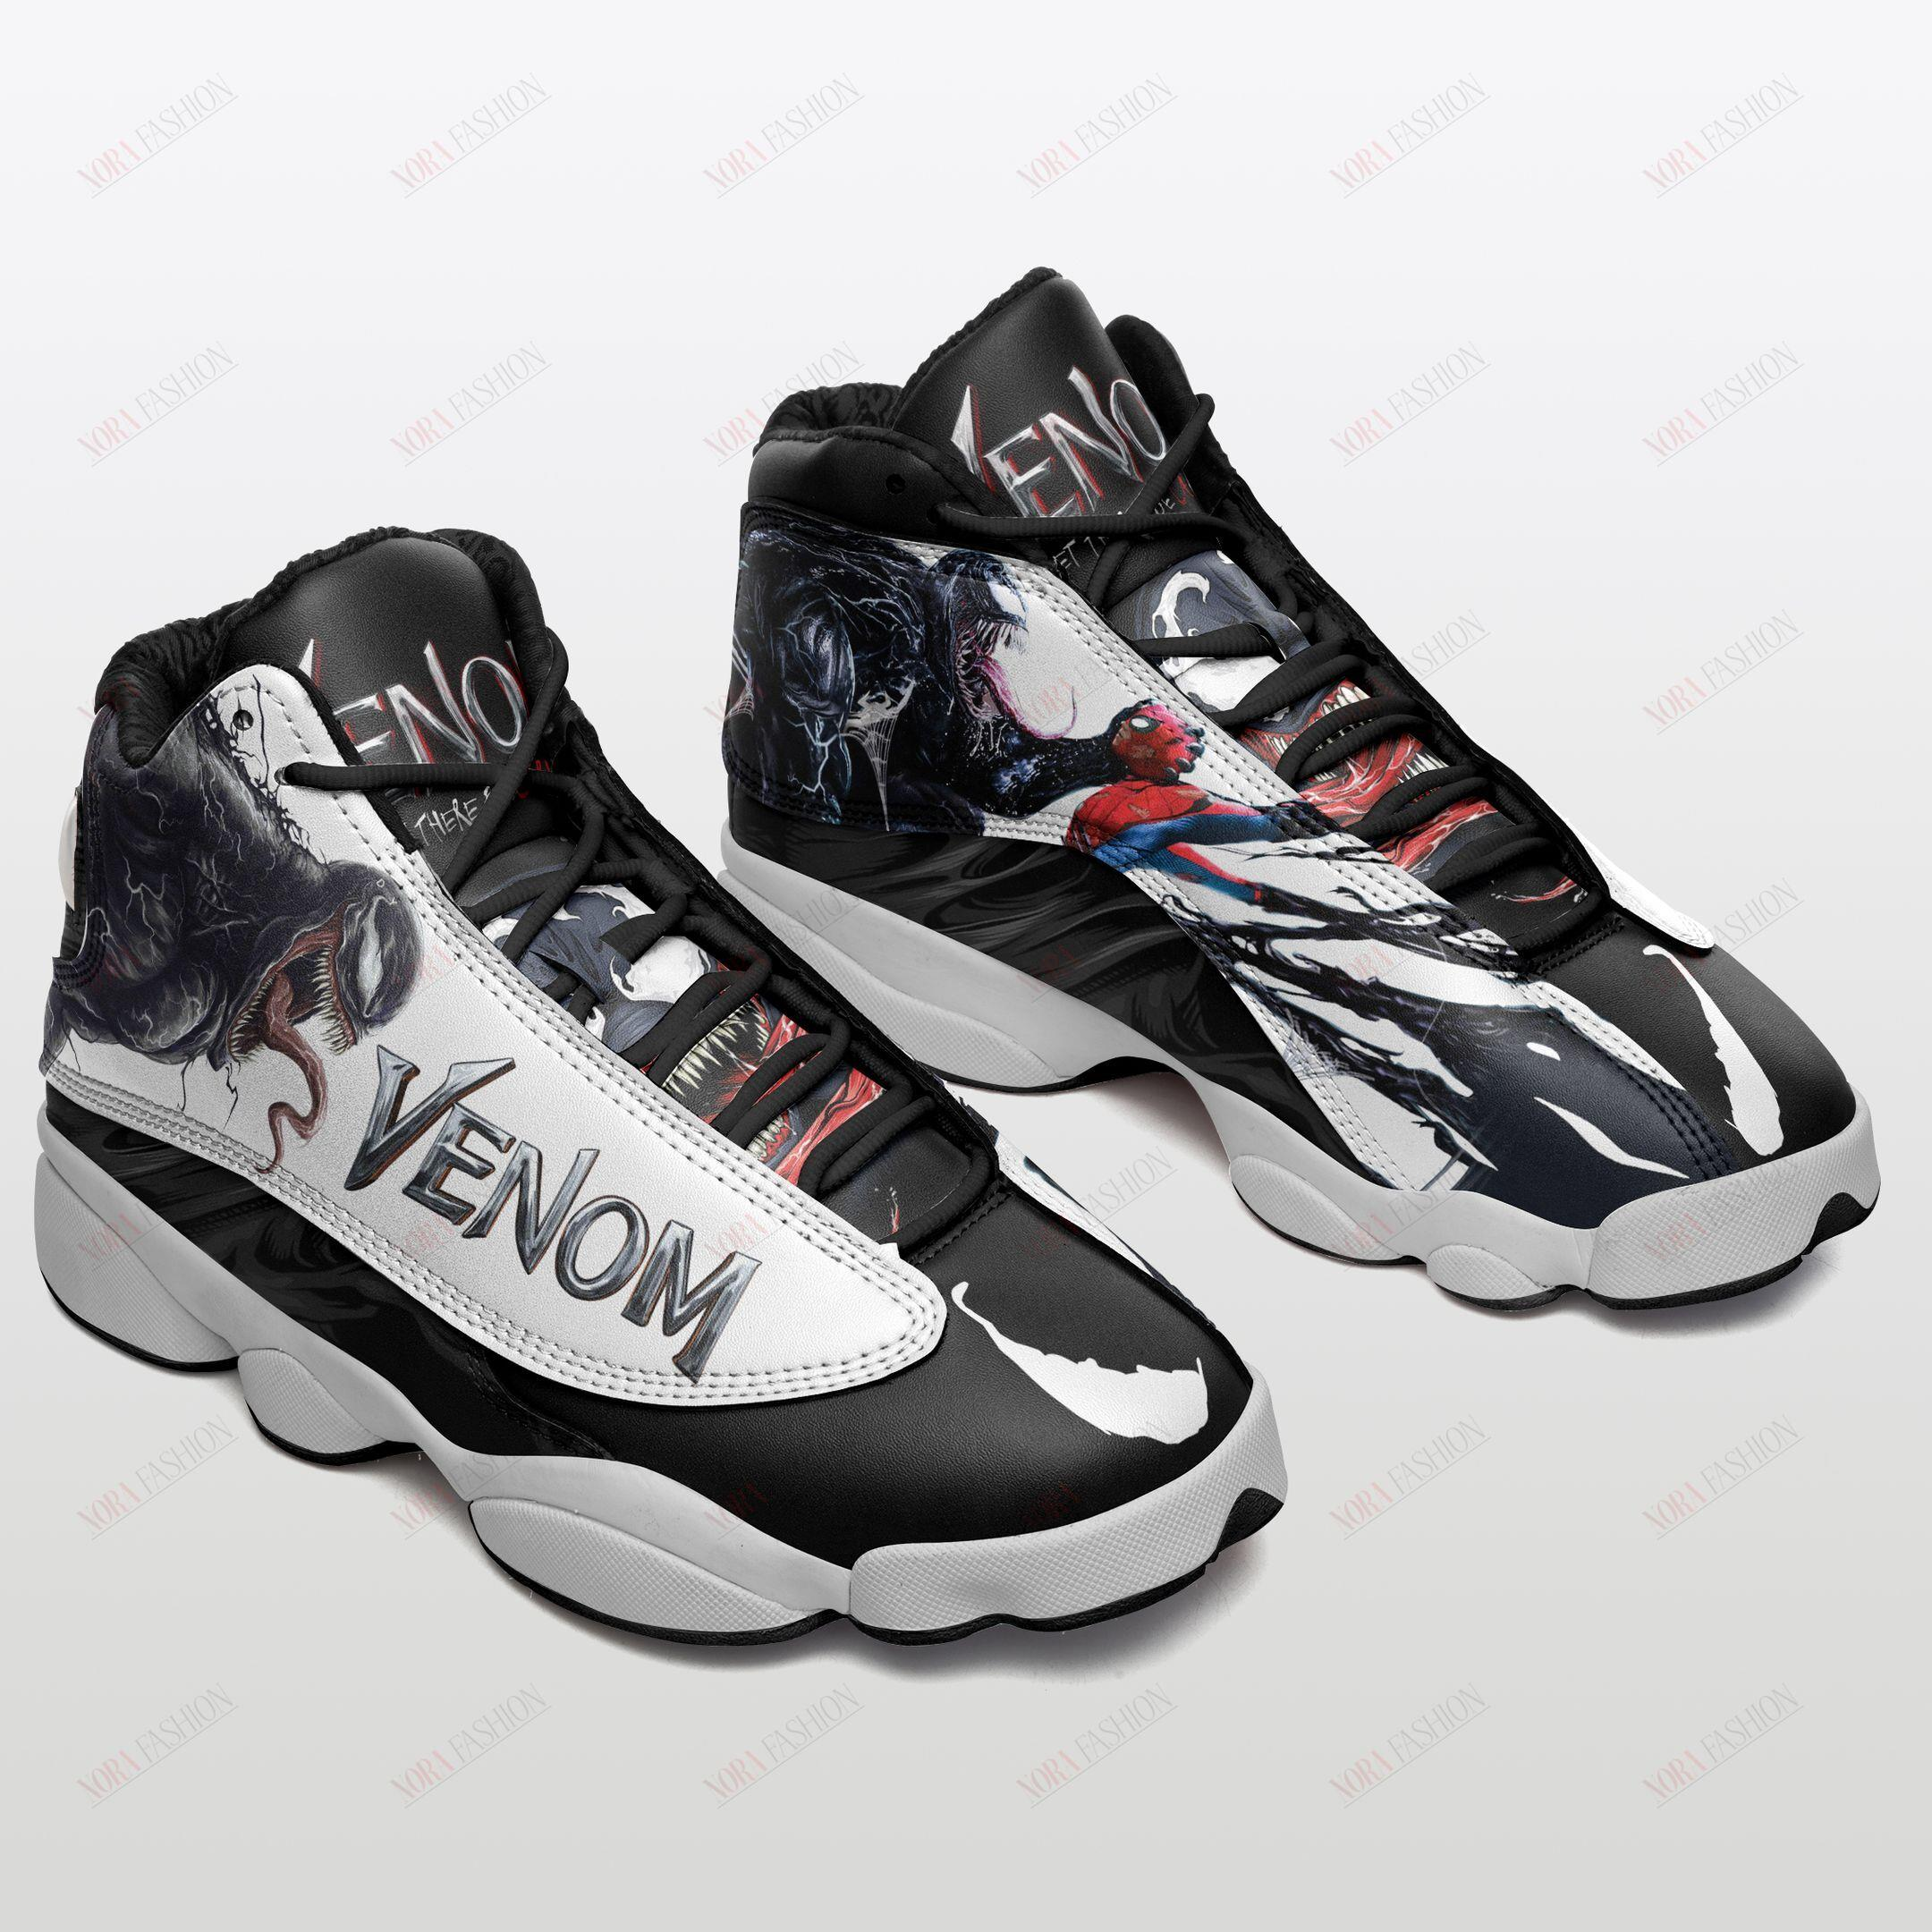 Venom Air Jordan 13 Sneakers Sport Shoes Full Size